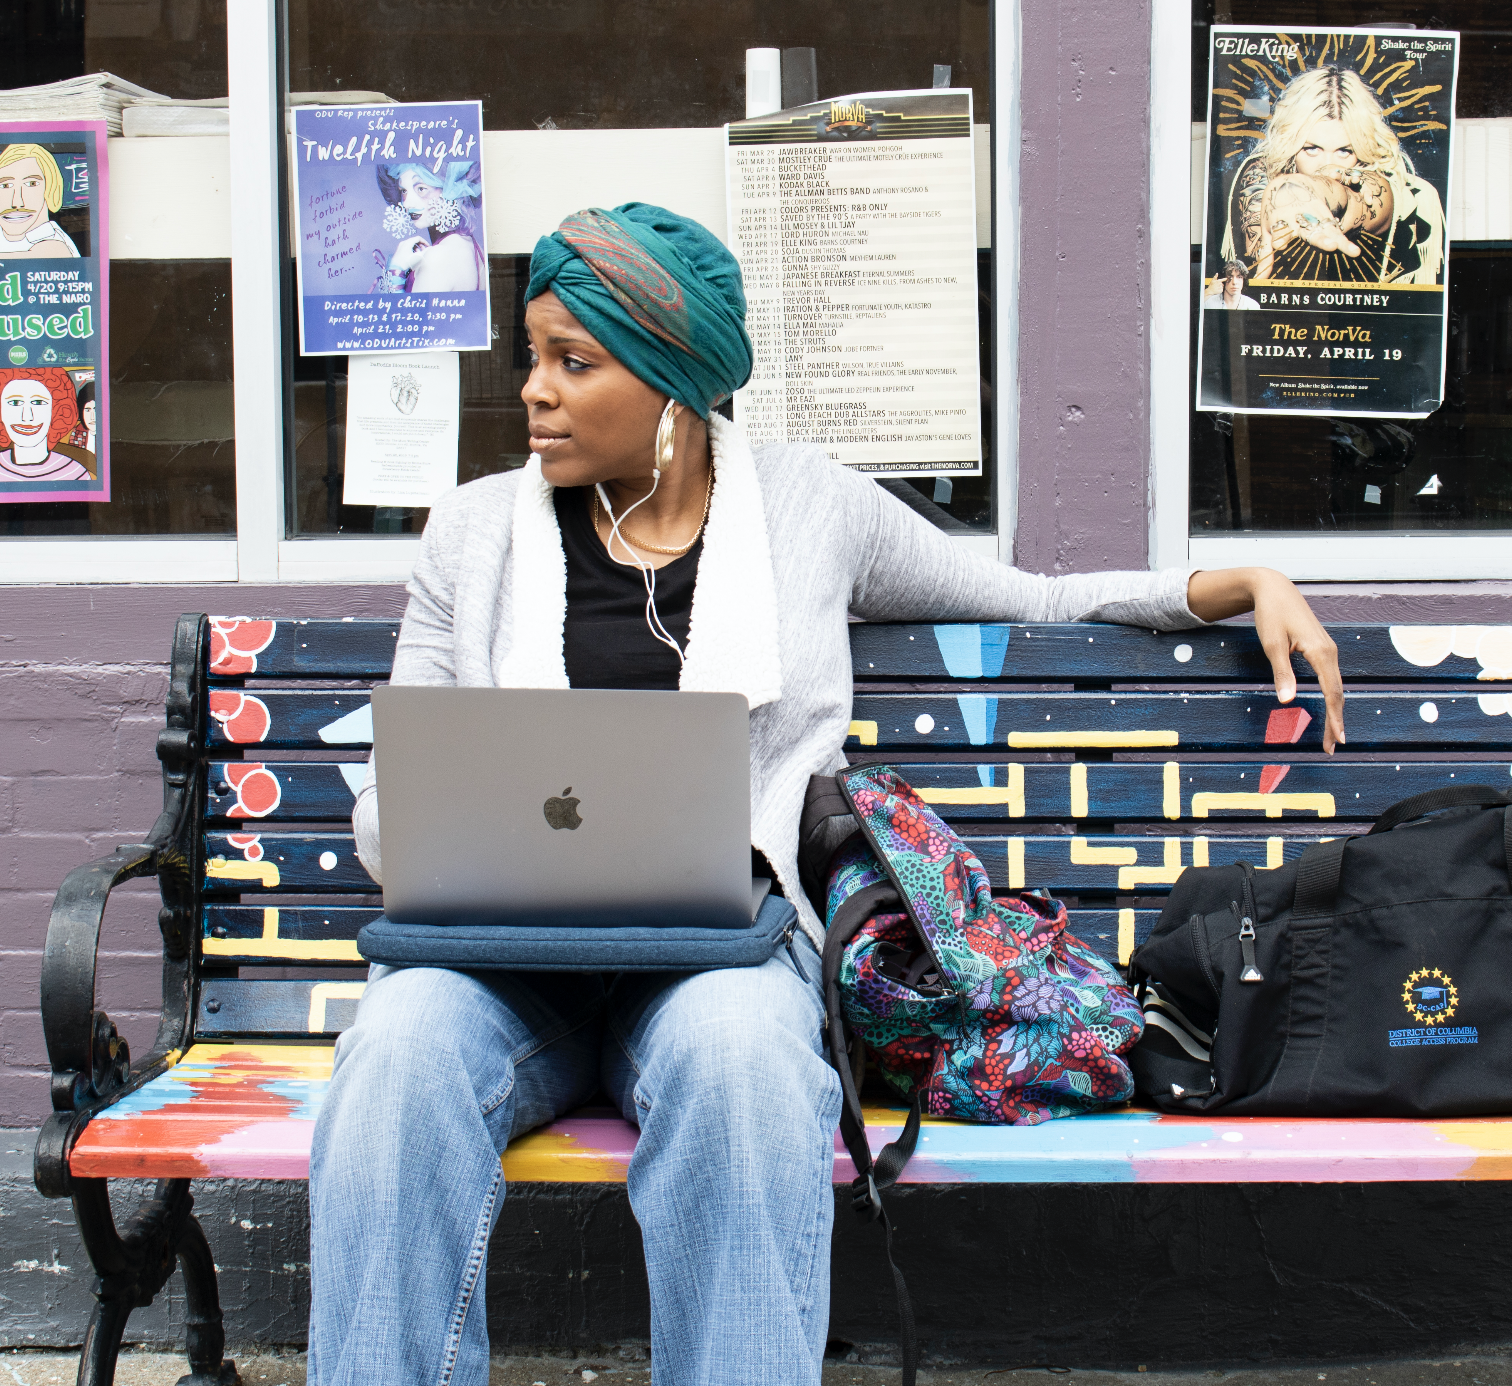 black-girl-with-headwrap-sitting-on-bench-with-laptop-computer-puckn-khaos